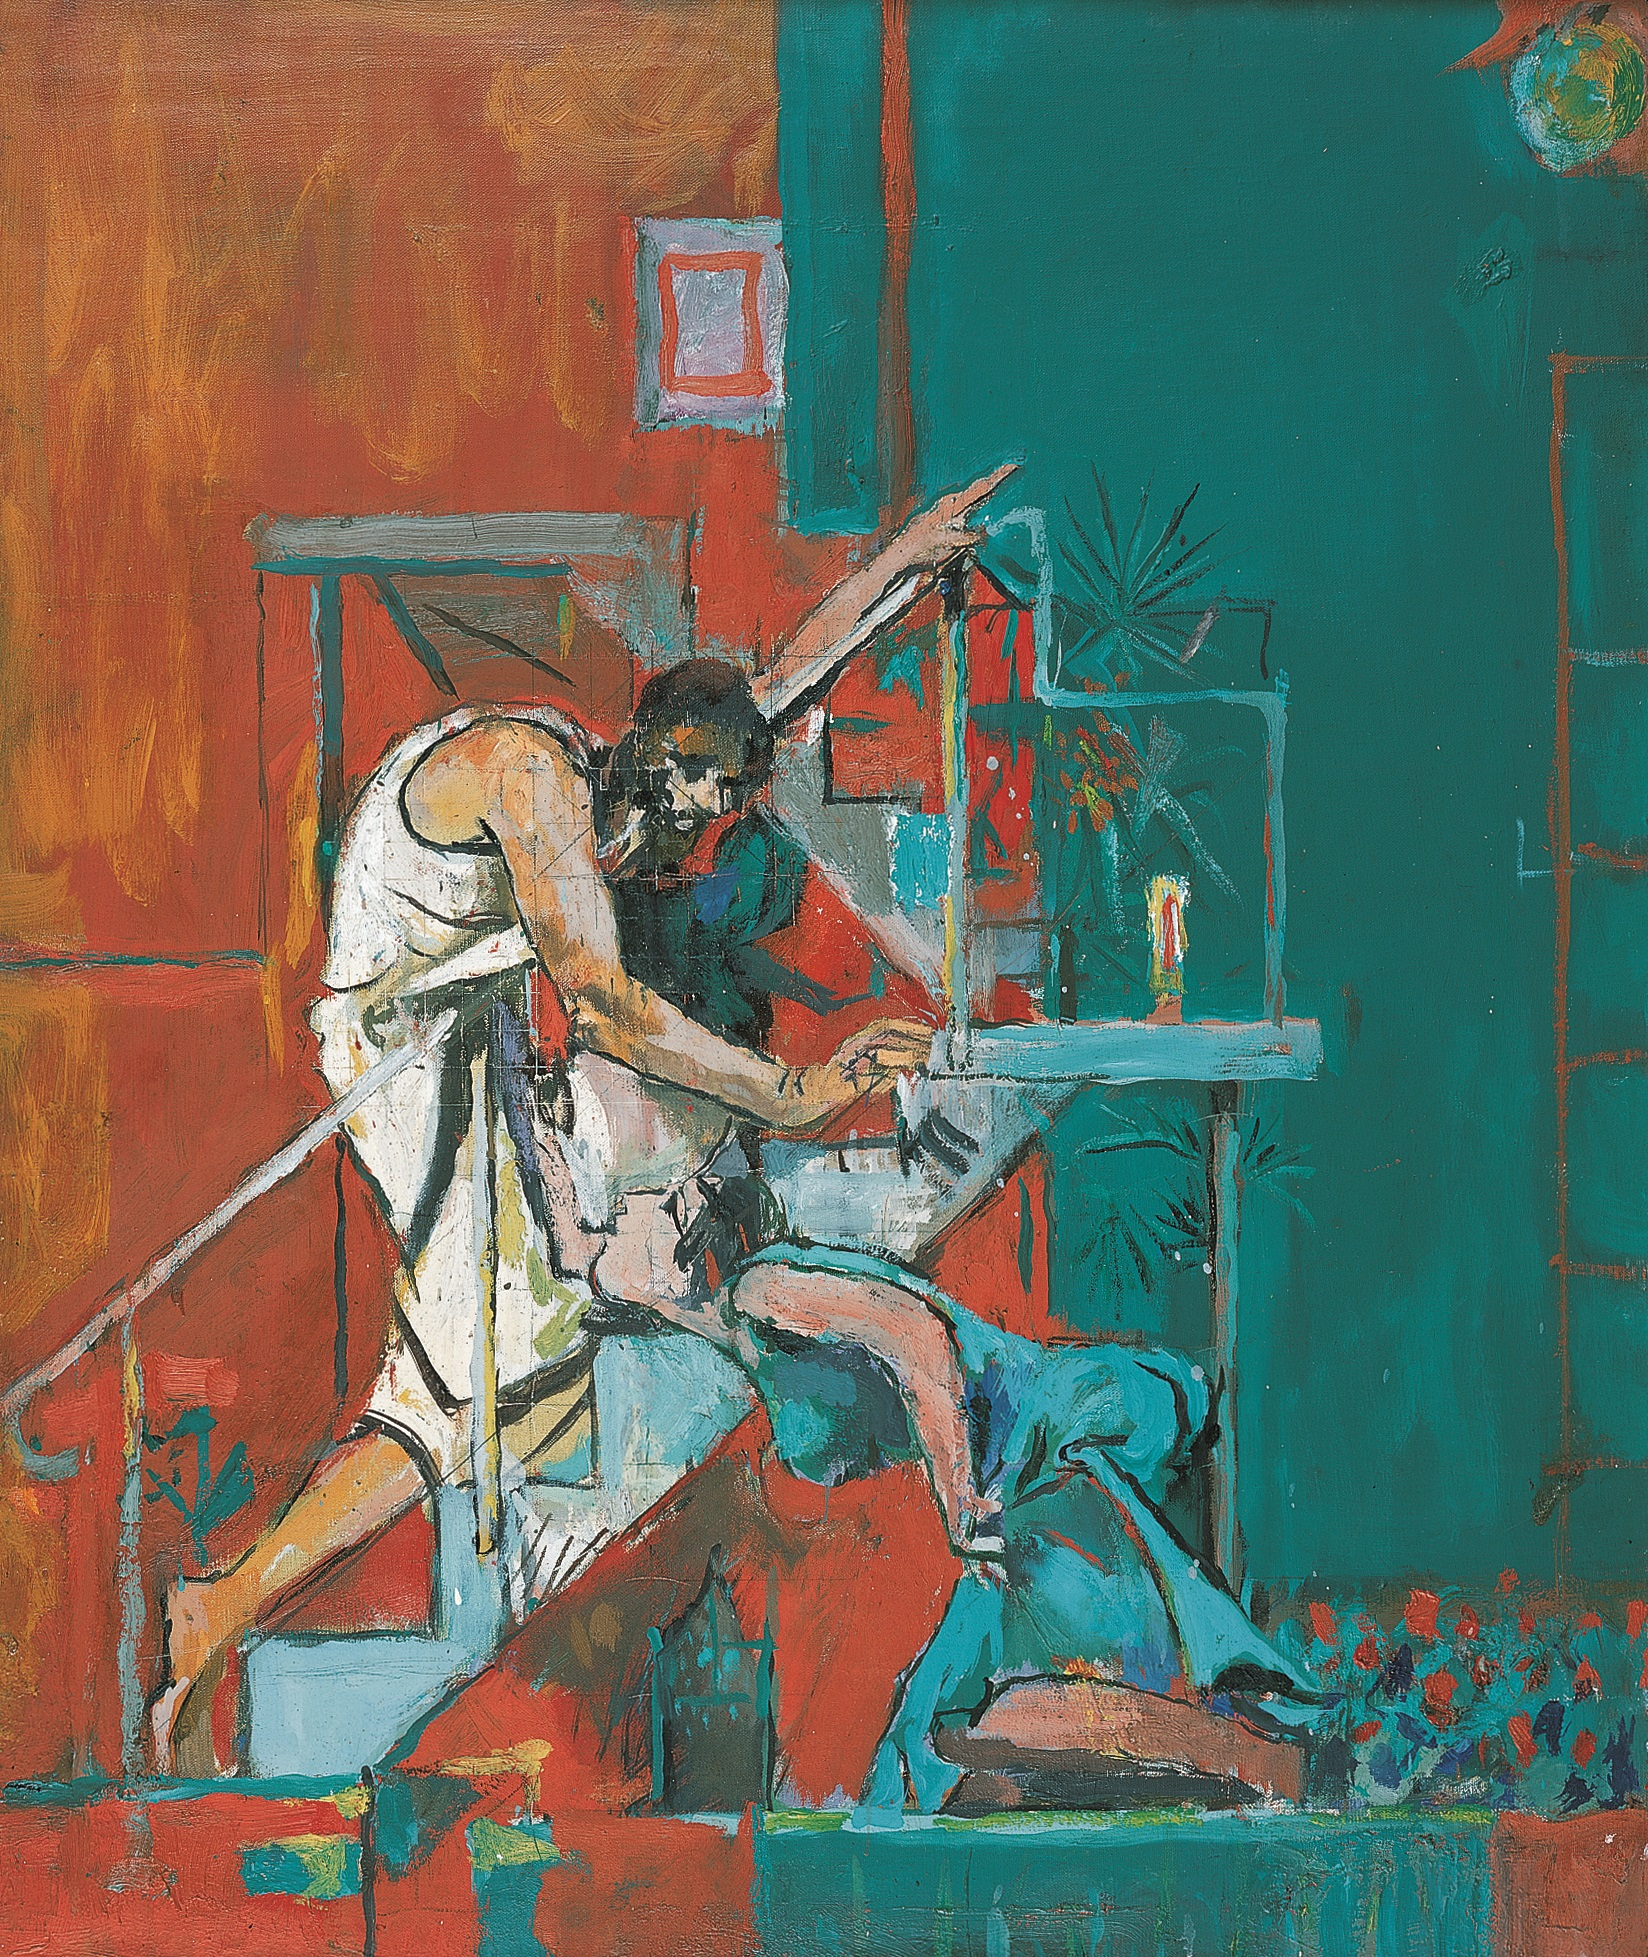 Painting showing a white robed Christ walking up a set of stairs and pointing upwards while a blue-robed woman kneels below him. The background is red and green.